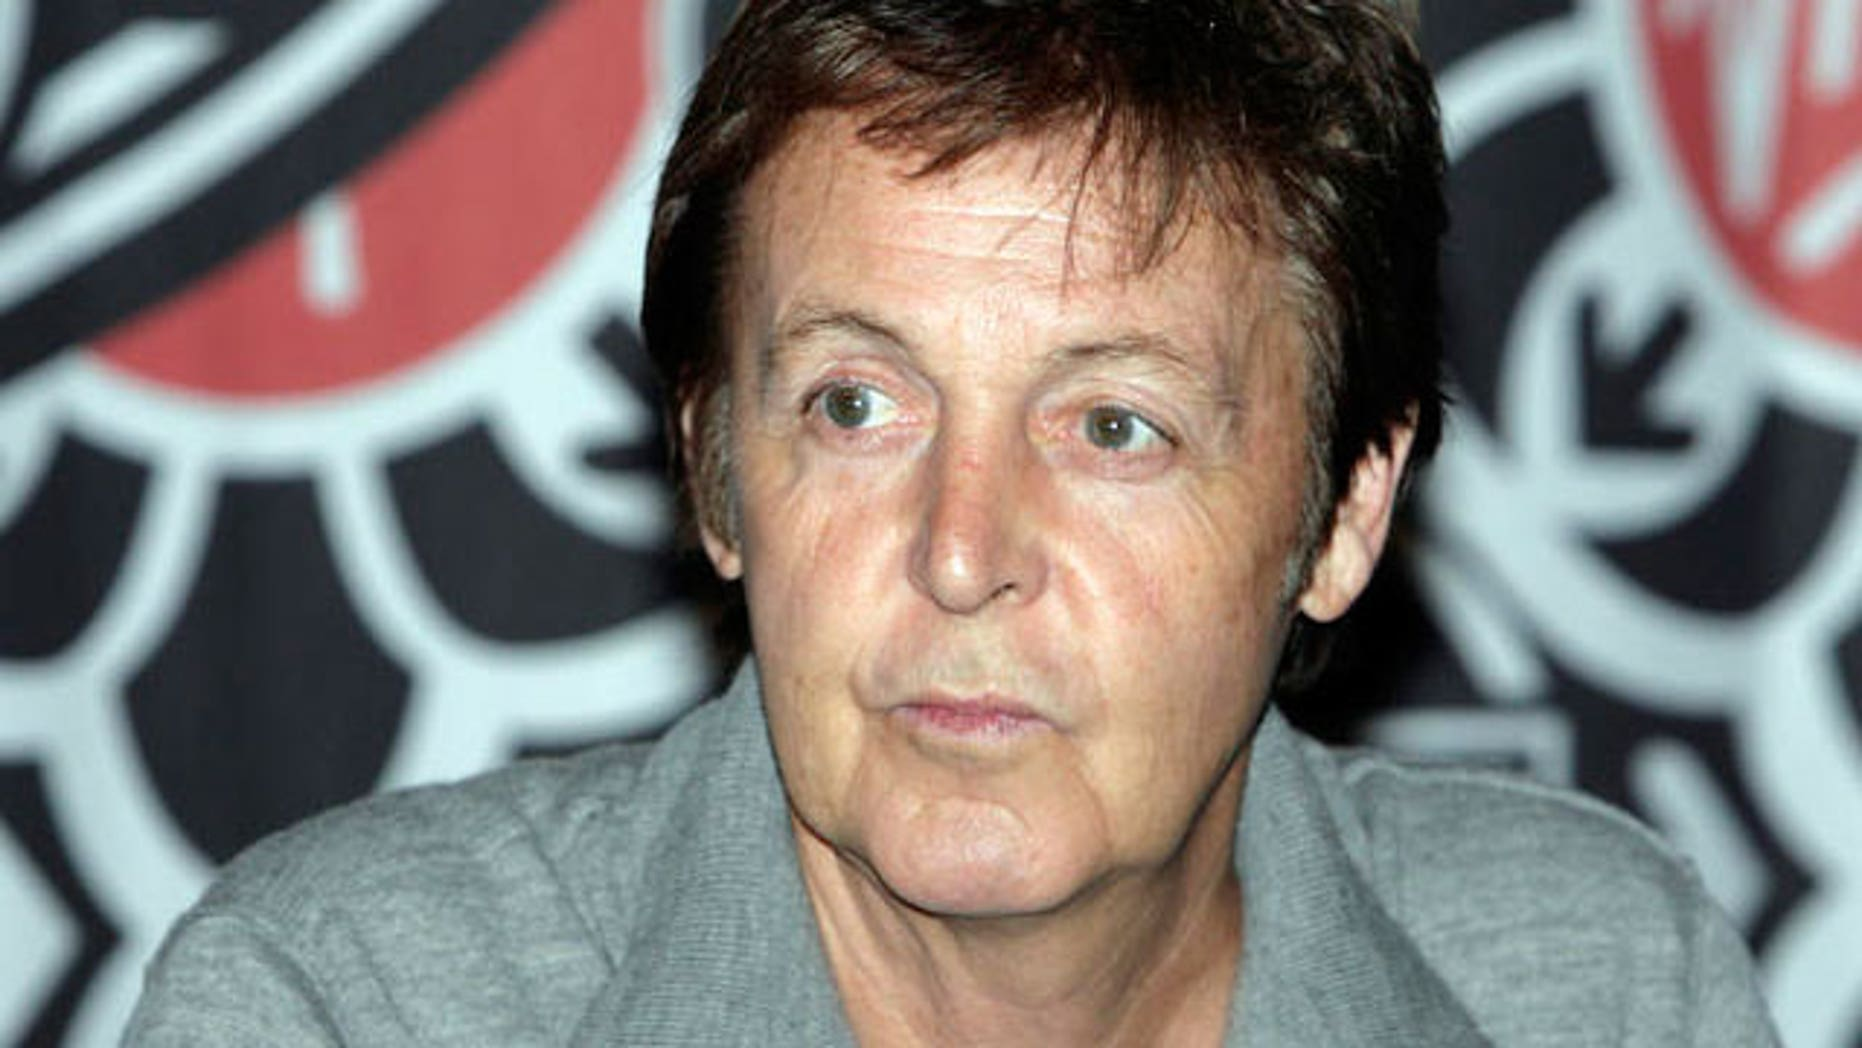 FILE: Paul McCartney is seen in this 2006 photo.